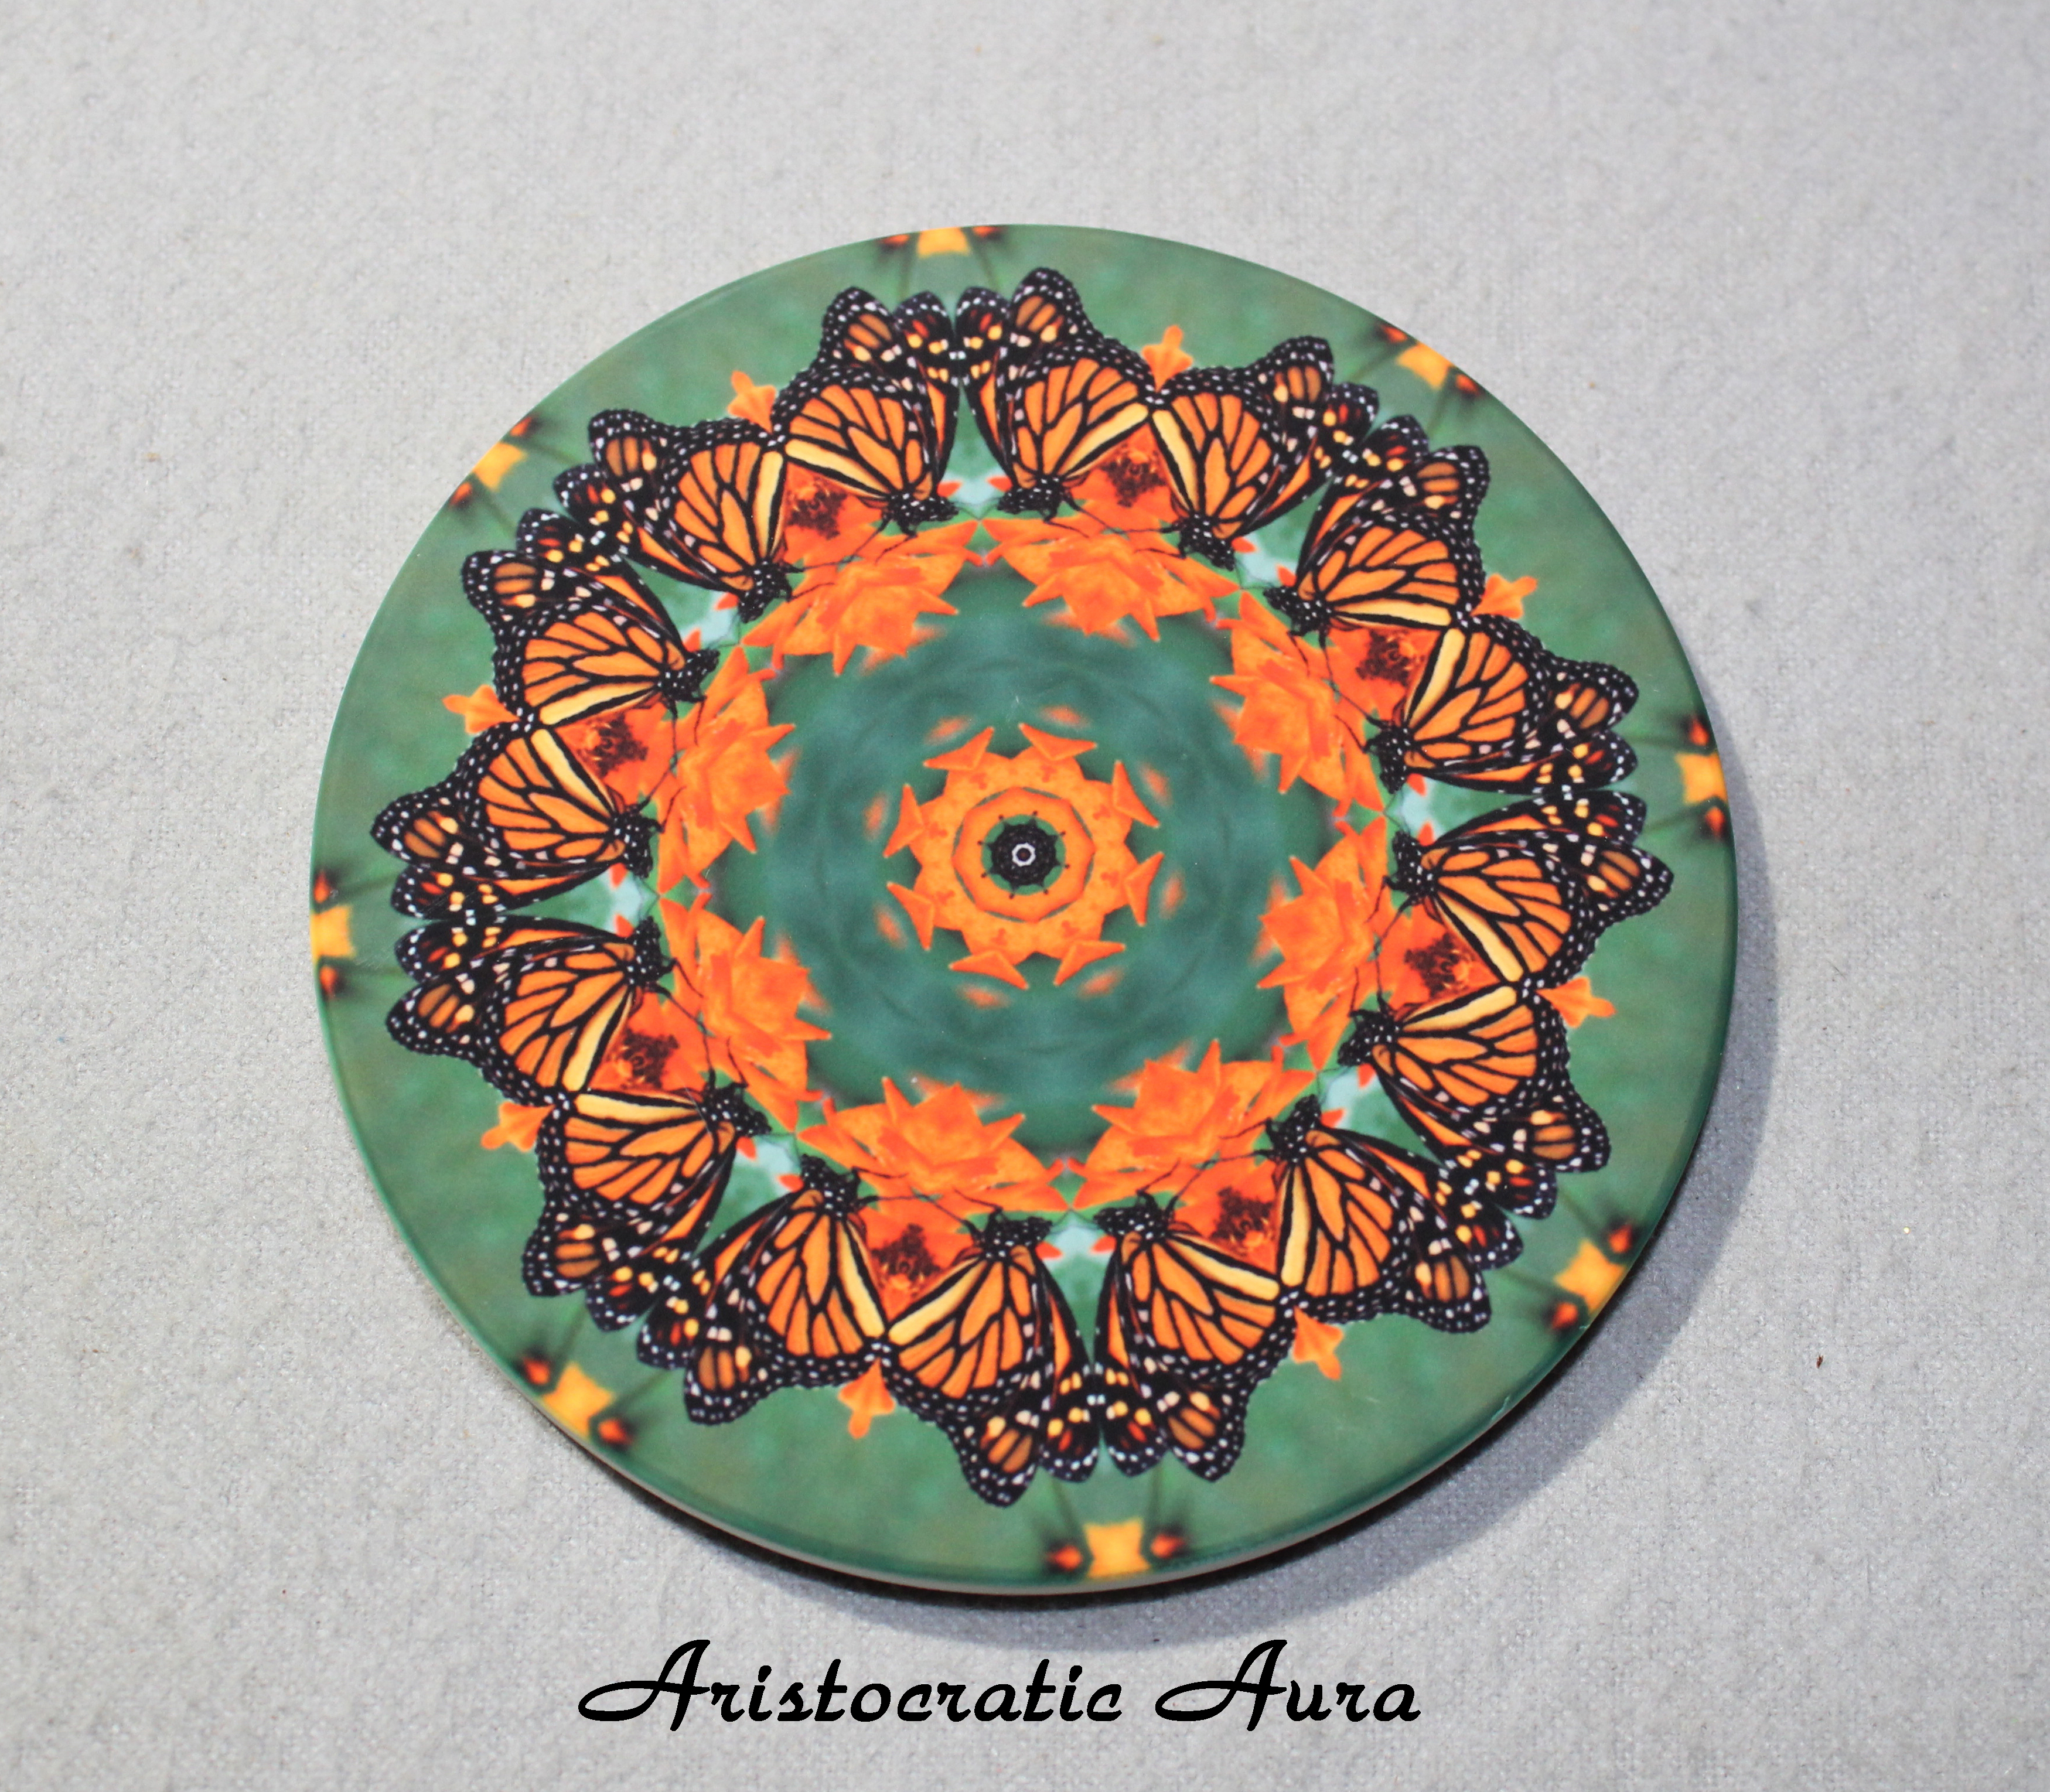 Coaster Drink Sandstone Custom Coasters Monarch Butterfly Nature Decor Aristocratic Aura